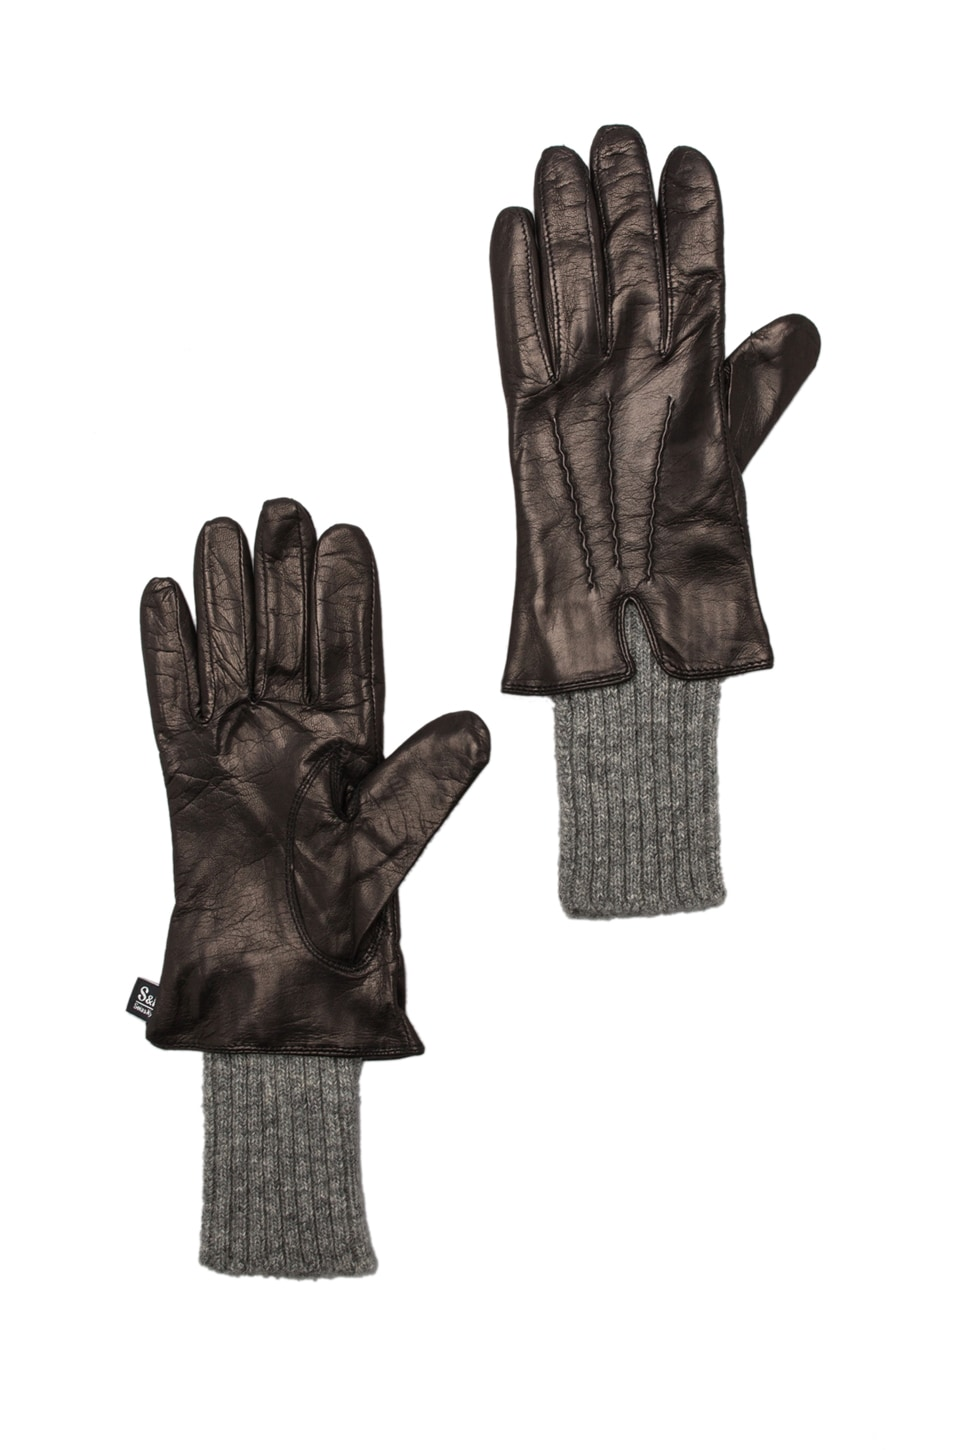 Soia & Kyo Vega Glove in Black